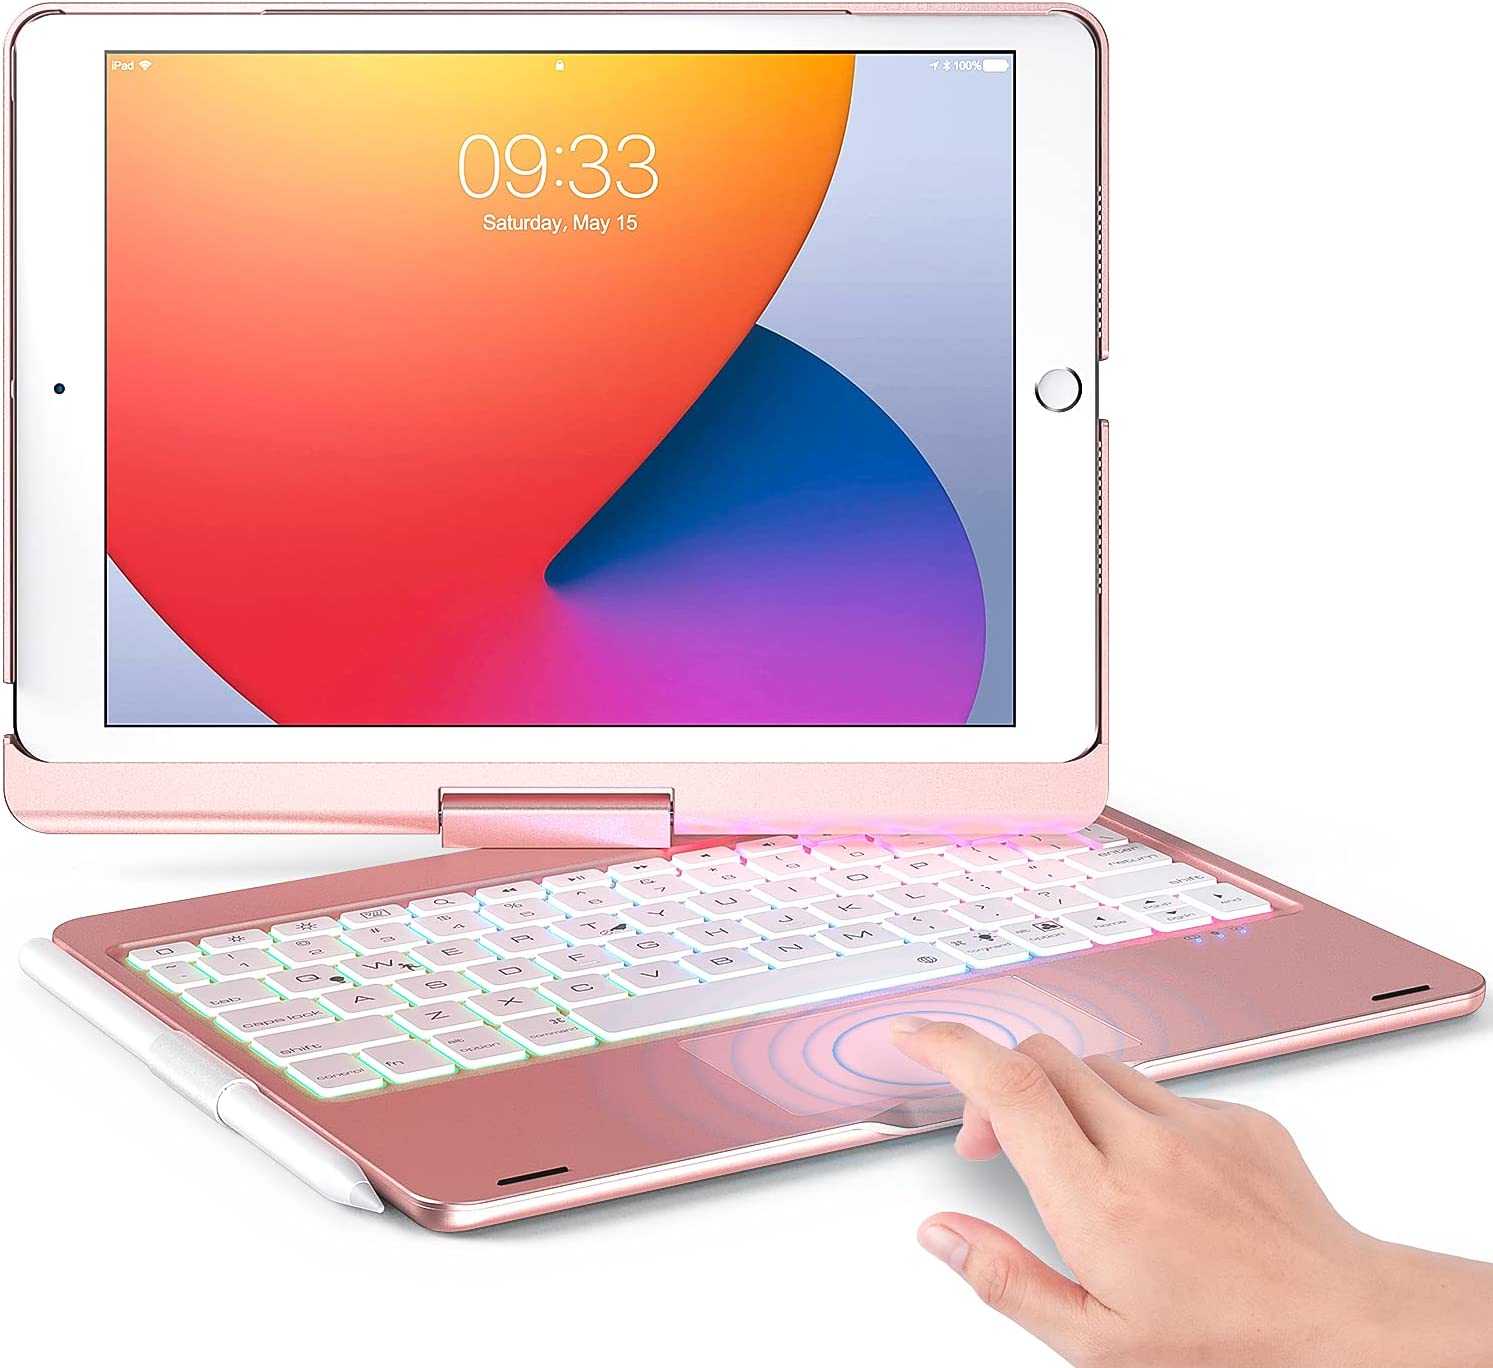 Keyboard Case Compatible with iPad 10.2 (8th/7th Generation) & iPad Pro 10.5 inch & iPad Air 3rd Gen - Wireless Backlight Keyboard with TouchPad for iPad 10.2/10.5.